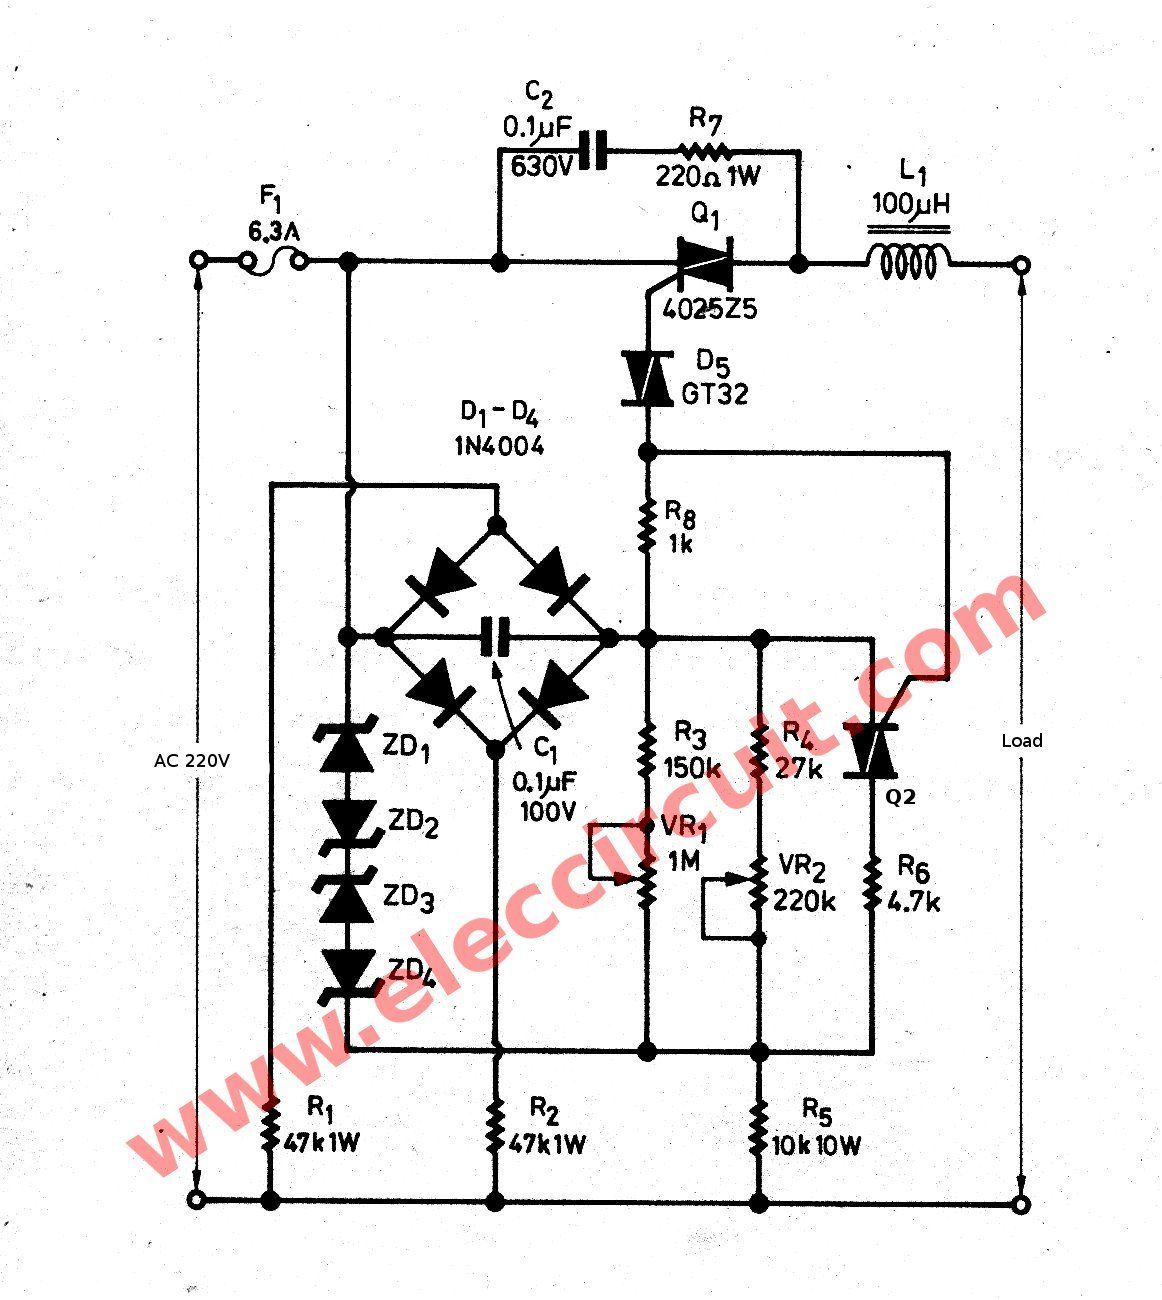 3000 watts dimmer for inductor load sch my pinterest free circuit diagrams 4u 1w led driver circuit diagram [ 1162 x 1300 Pixel ]